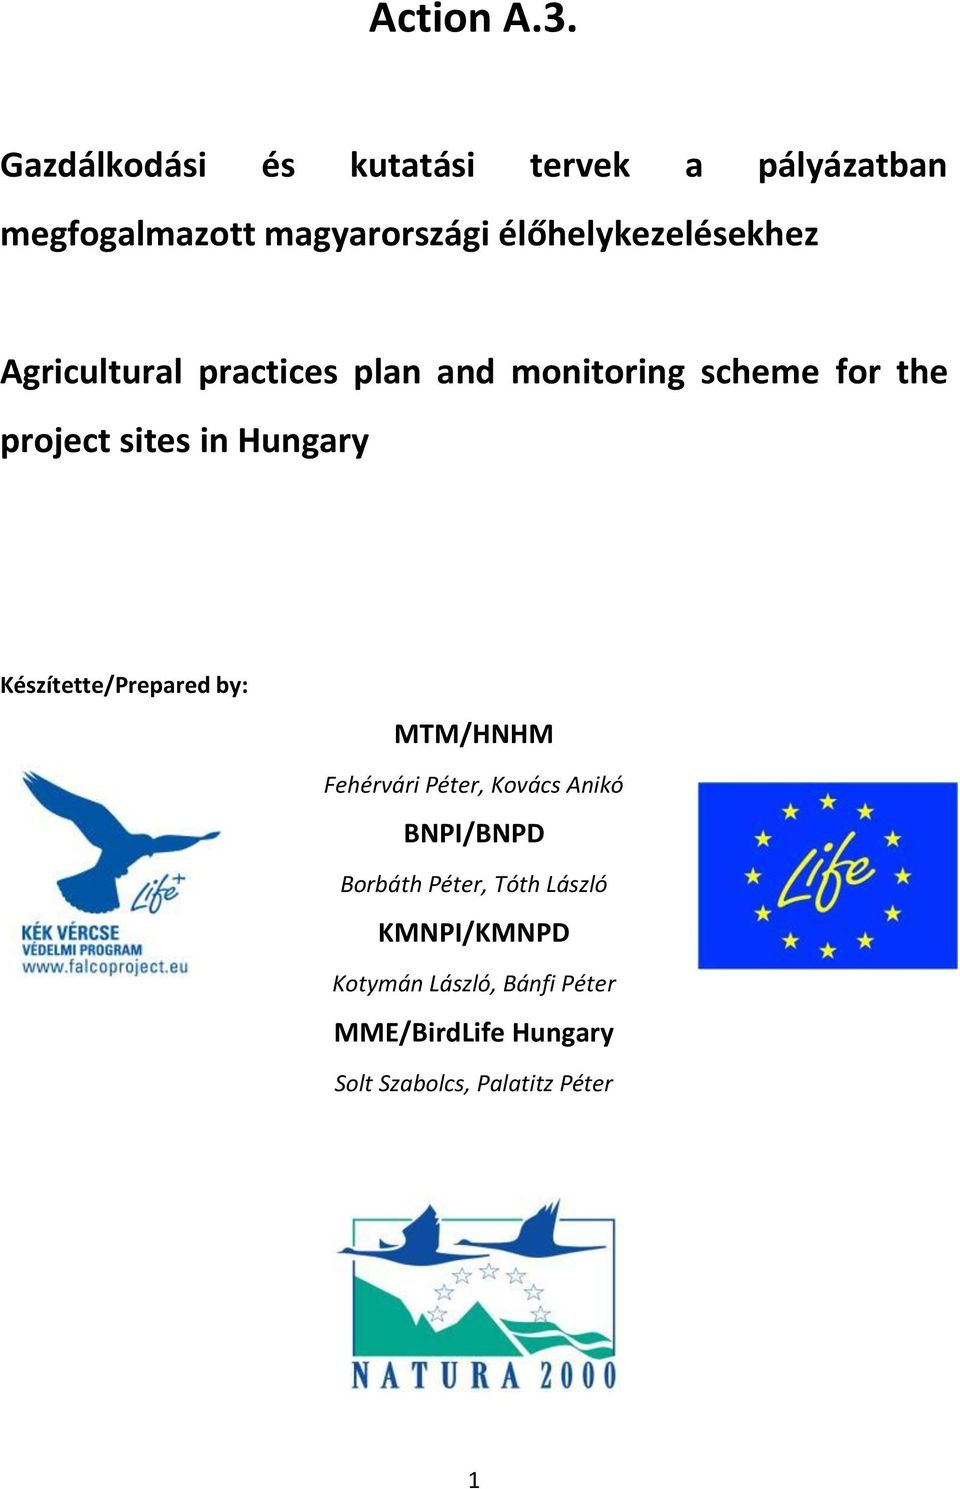 Agricultural practices plan and monitoring scheme for the project sites in Hungary